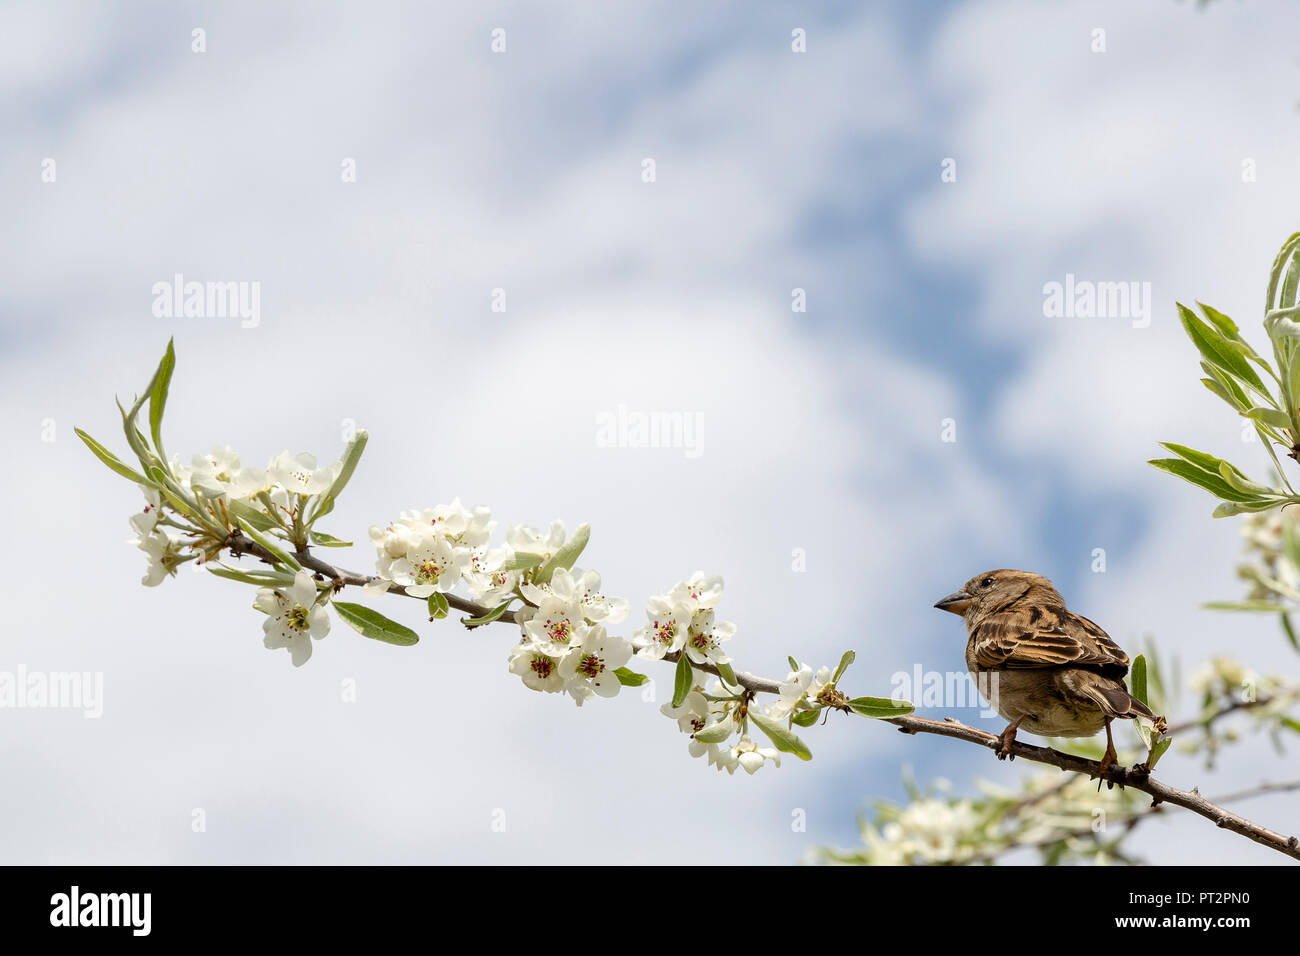 Bird on a branch of a tree - Stock Image